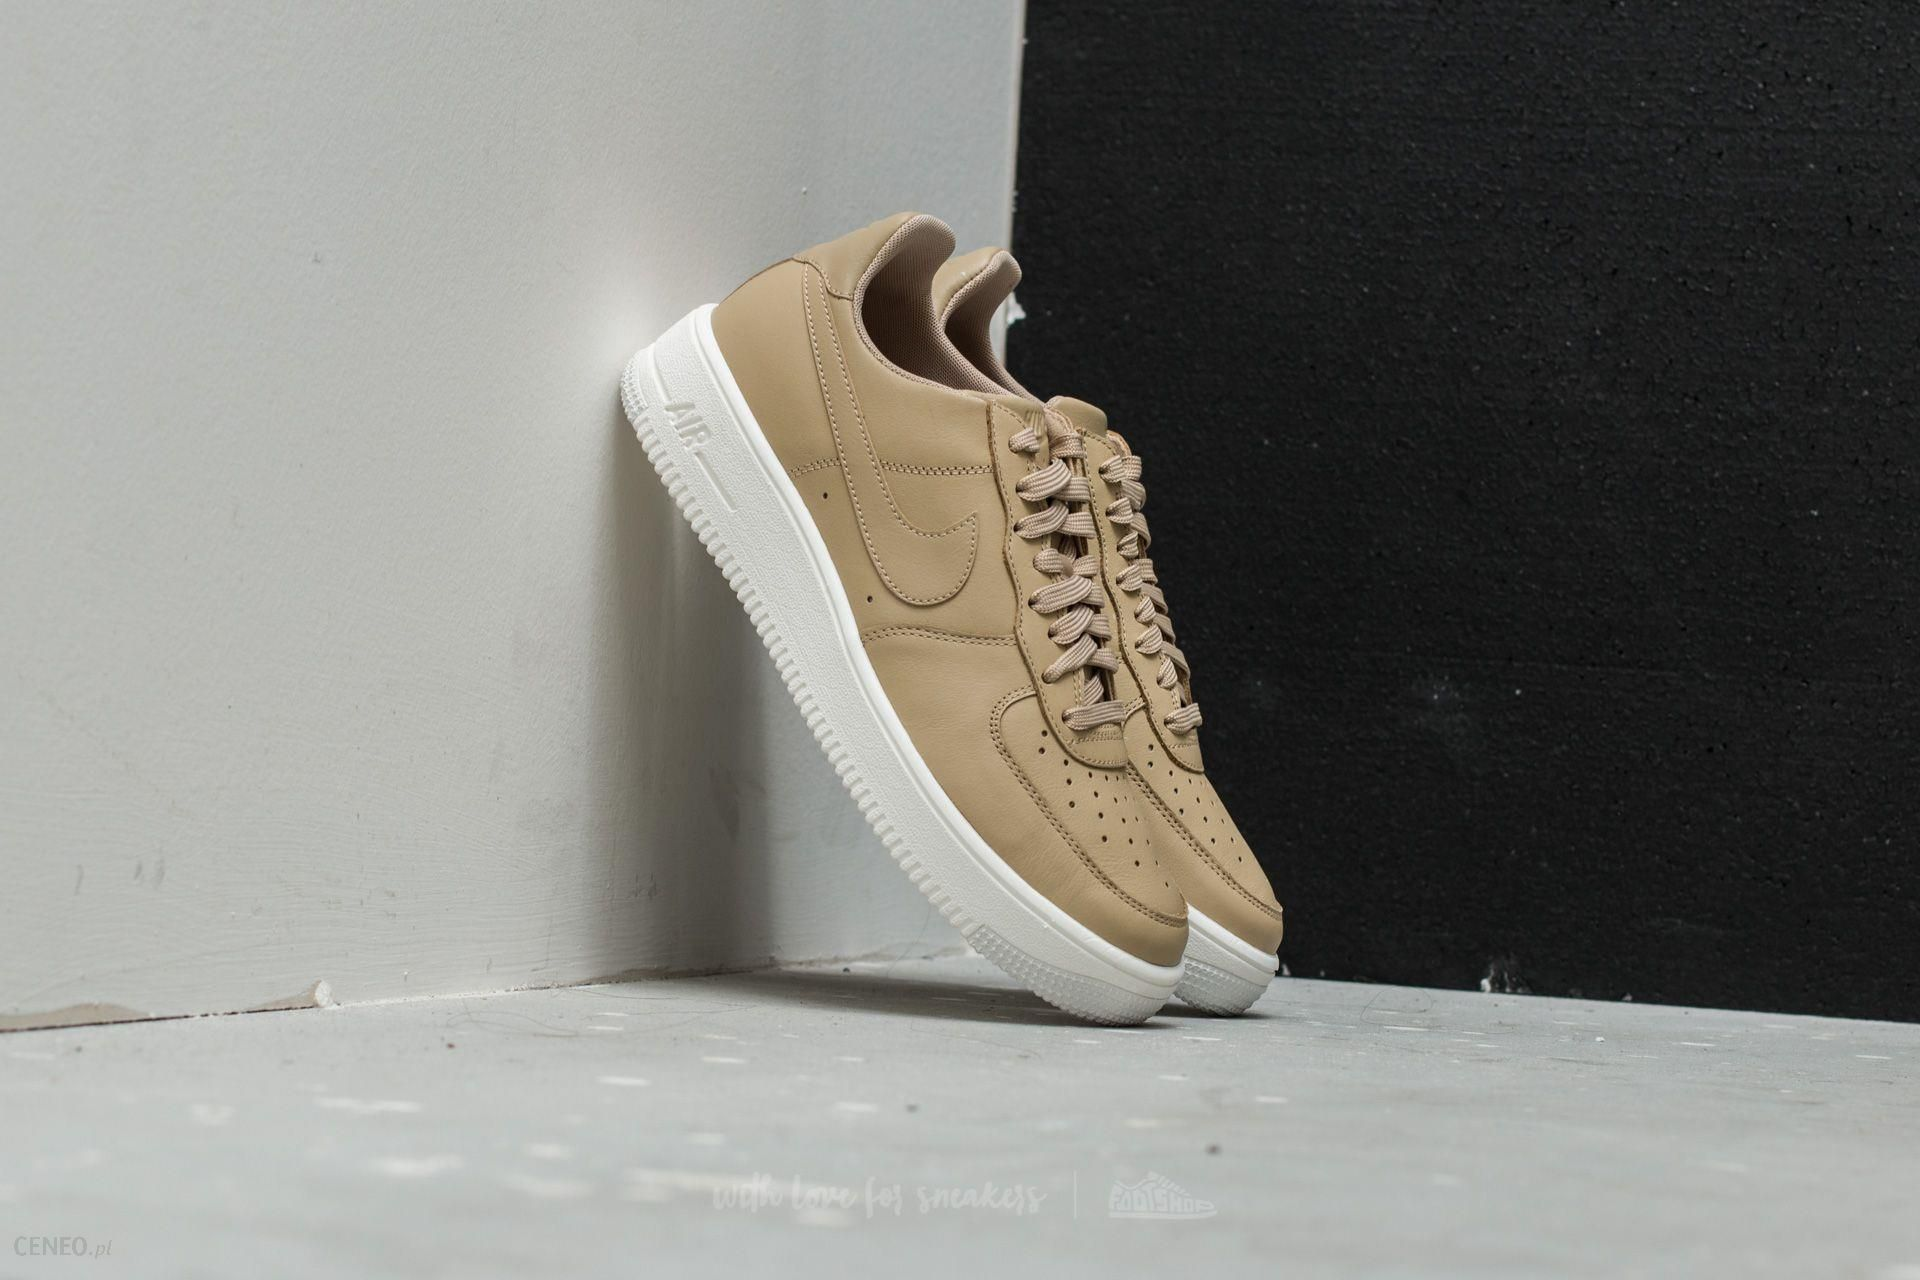 Nike Air Force 1 Ultraforce Leather: Three Color Options